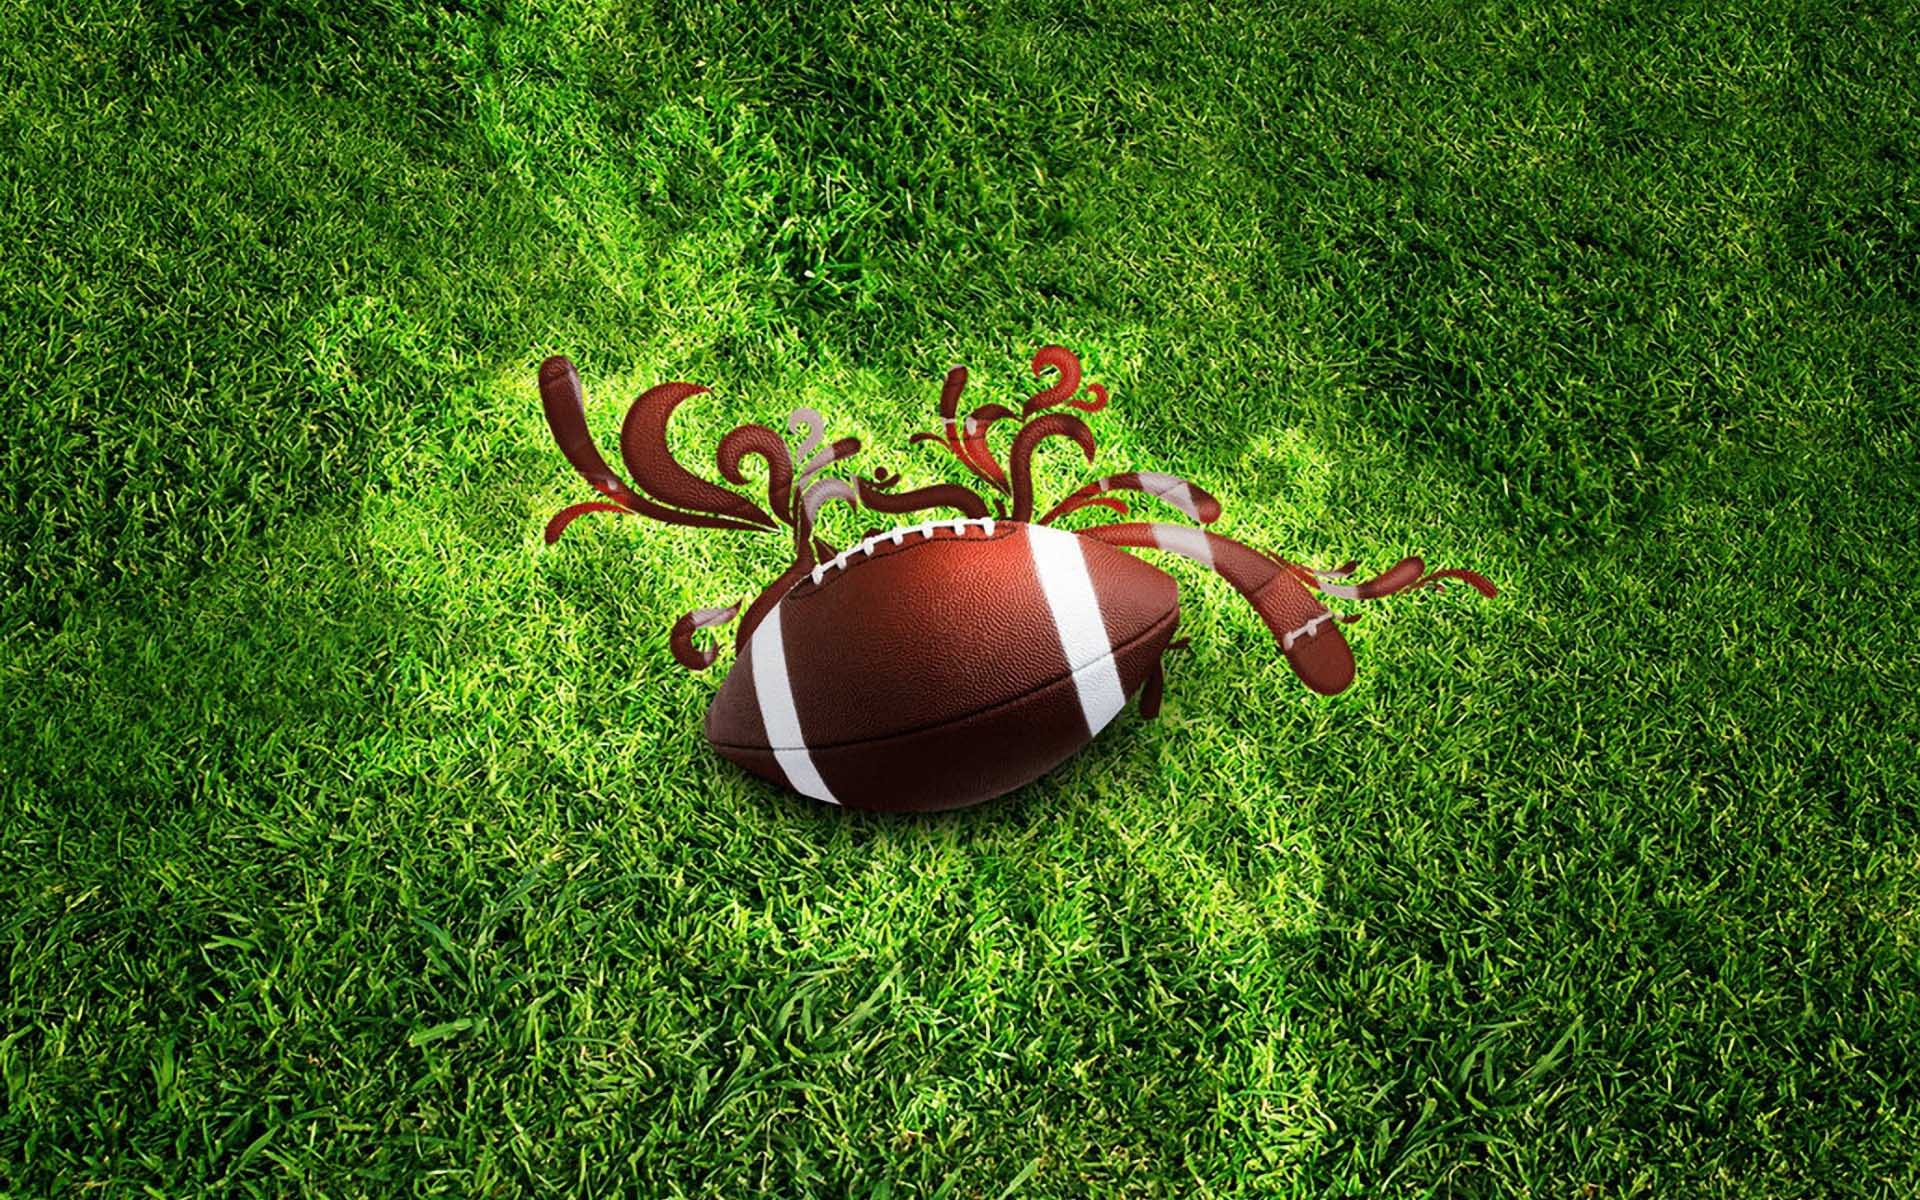 American Football Wallpapers Backgrounds By Fexy Apps: Football Desktop Wallpapers